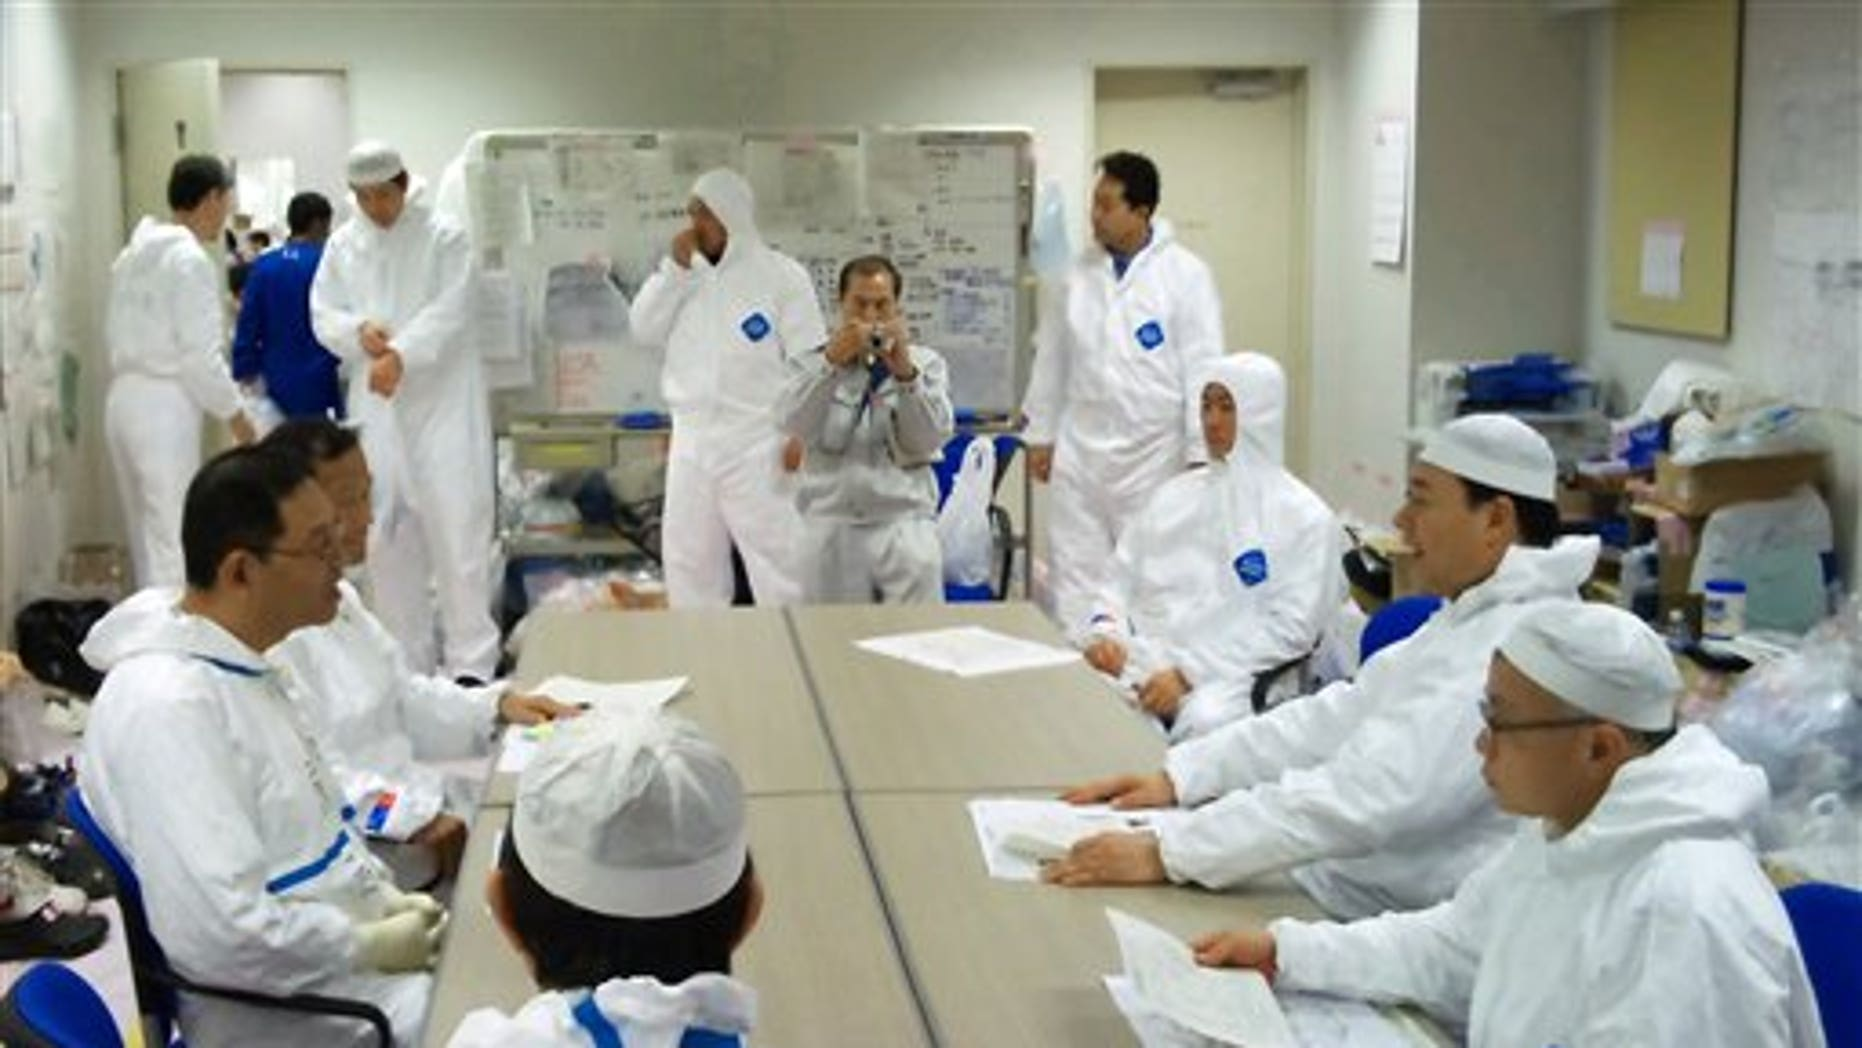 April 9: In this photo released by Nuclear and Industrial Safety Agency via Kyodo News, Japanese Trade Minister Banri Kaieda, second right, in protective suit listens to employees of Tokyo Electric Power Co. inside the waste processing building of the Fukushima Dai-ichi nuclear power plant during his one-day trip to the tsunami-crippled complex in Okuma town, Fukushima Prefecture. (AP/Nuclear and Industrial Safety Agency)